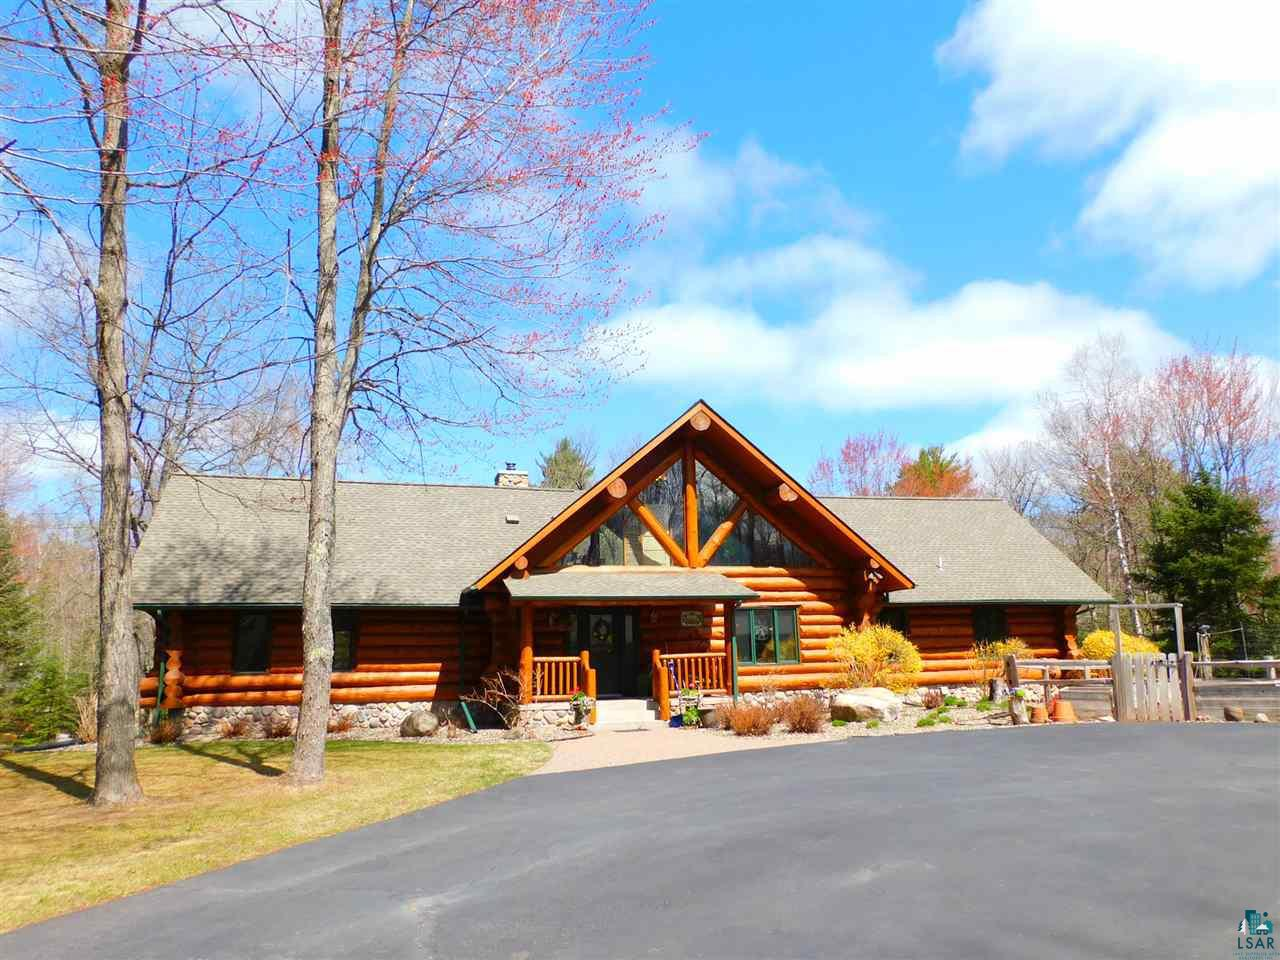 If you are looking to own a piece of Northern Wisconsin with a custom-built log home (Anderson & Hammack), nestle with mature Maple, Oak, Birch, Balsam, Aspen, Red Pine trees, and 1,600' of water frontage from Amnicon River. This property offers 58 acres of sandy soil, mature trees, a private & secluded setting with natural beauty and sounds that surround you. No matter what time of the year, this property has so much beauty to share with your family to create special memories. Imagine sitting outside on the balcony from the kitchen or in the front of this home under a covered front porch to watching wildlife or just listening to the sounds from Amincon River! Home includes many unique features to many to mention, vaulted ceiling with fans, two master bedrooms with two full master bathrooms, kitchen, dining room, ample storage, and lots of natural woodwork with large windows. The main floor features over-sized walls, vaulted ceilings with ceiling fans, and lots of double-paned windows will allow you to capture all the natural sunlight and views of beautiful trees and nature. Large wood-beamed ceilings throughout the living and dining room, and a unique curved stairway up to the upper loft area, that could be a possible sizeable fourth bedroom or Den/Family room. The kitchen includes hickory cupboards, granite countertops, gas stove, two ovens, with kitchenette & formal dining room, large pantry, main floor laundry room, and a side entry mudroom. Large master suite with a luxury master full bathroom with granite countertops and jetted tub and shower. Lower level features a Great Room for entering, walkout doors leading to the river, hardwood oak floors, & recessed lighting. Two spacious bedrooms with large windows facing river, walk-in closets, and sauna. Recreational fun for you and your family, hunting, fishing, hiking, biking, and horseback riding too. This property is also located nearby to Anna Gene County Park, & Amnicon State Park with campground & swimming. E